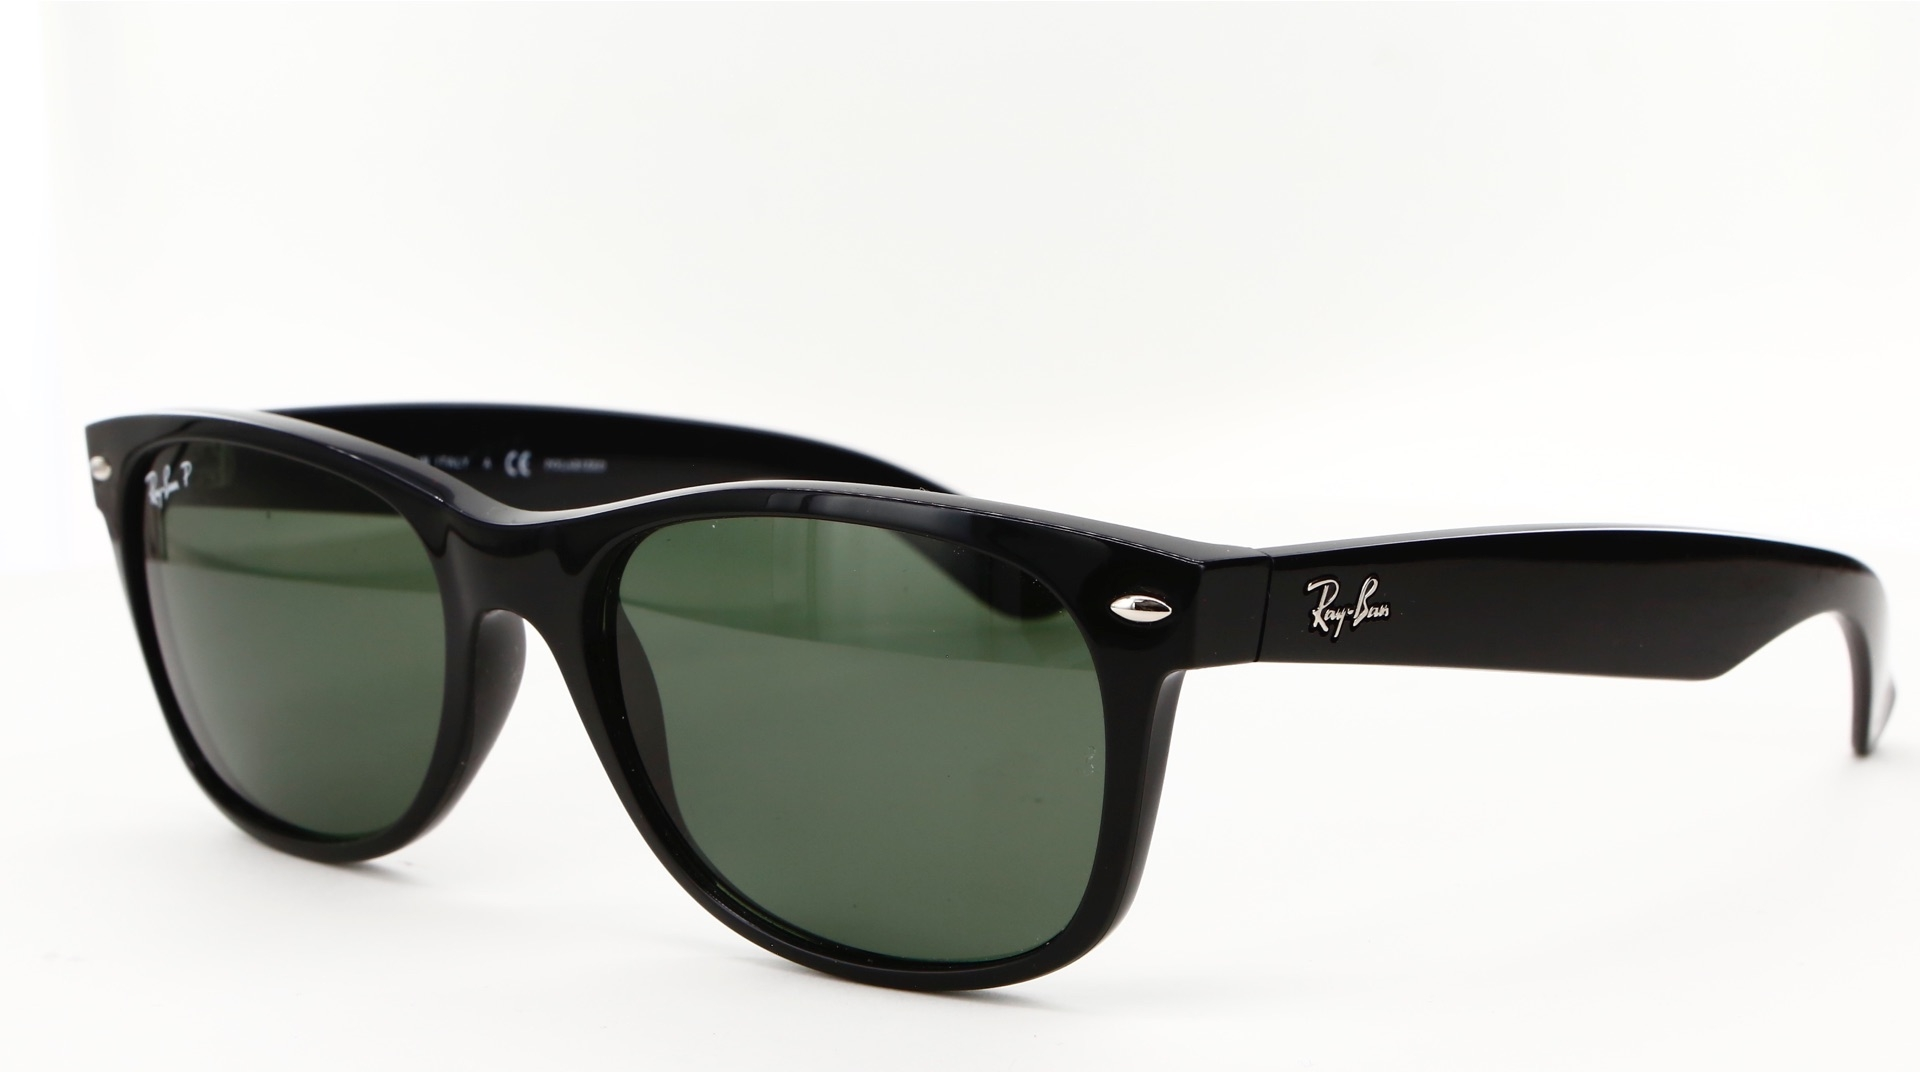 Ray-Ban - ref: 64661